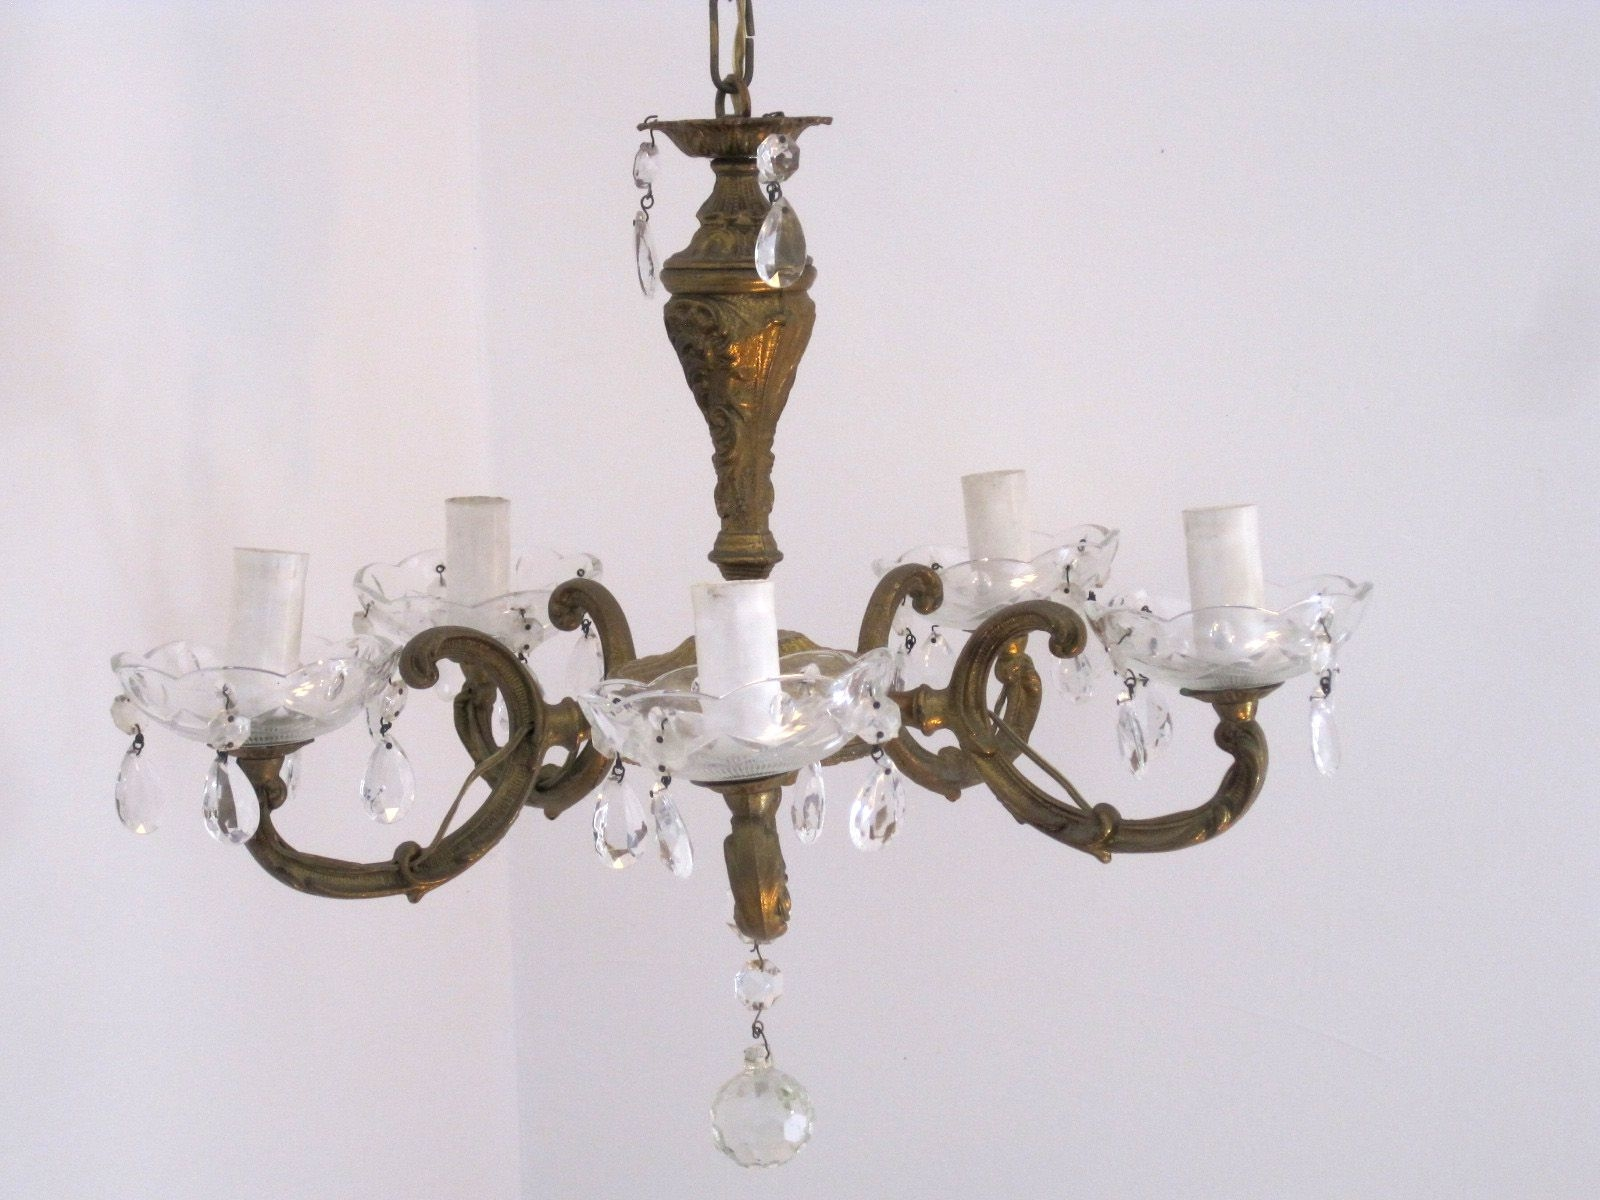 Vintage French Bronze Crystal Glass Ornate 5 Arm Chandelier Regarding French Bronze Chandelier (Image 15 of 15)